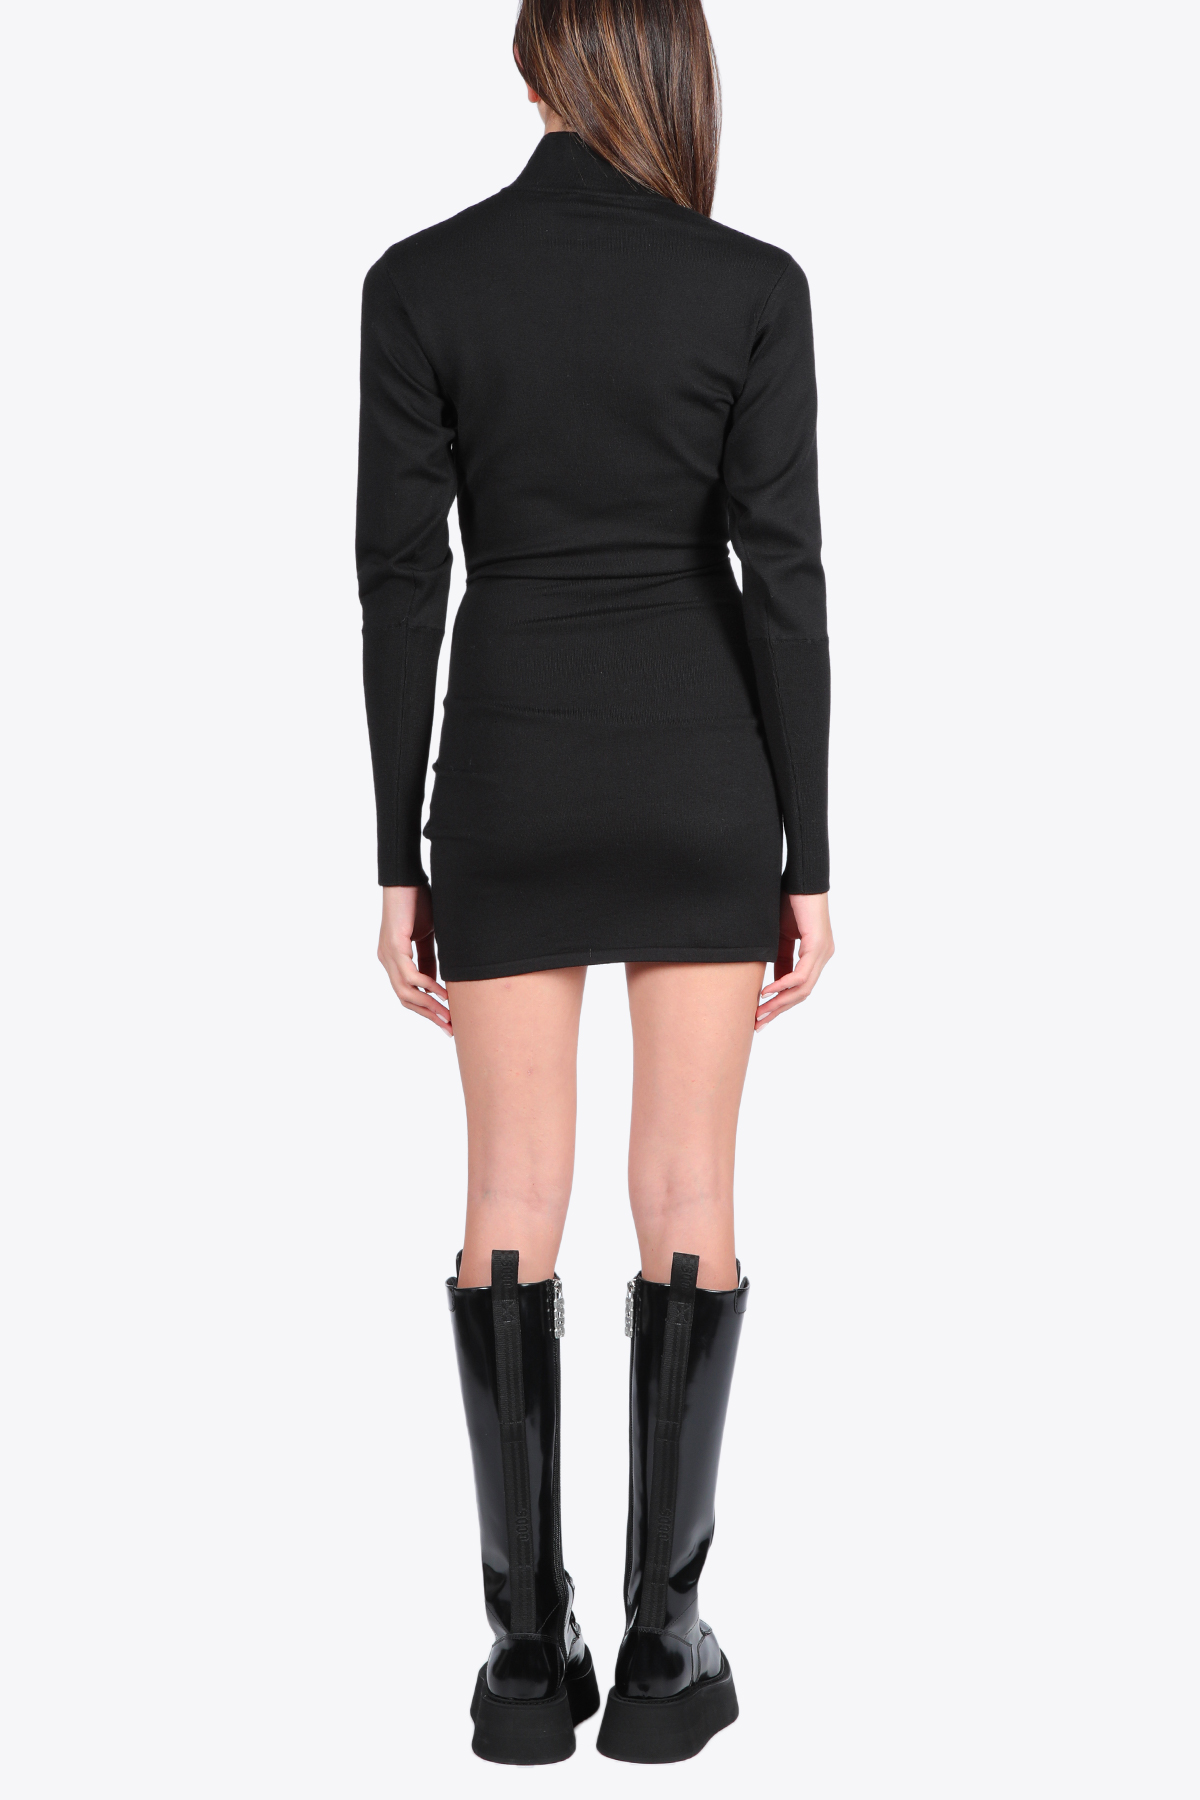 WRAPPED KNITTED DRESS GCDS | 11 | FW21W020019 WRAPPED KNITTED DRESS02